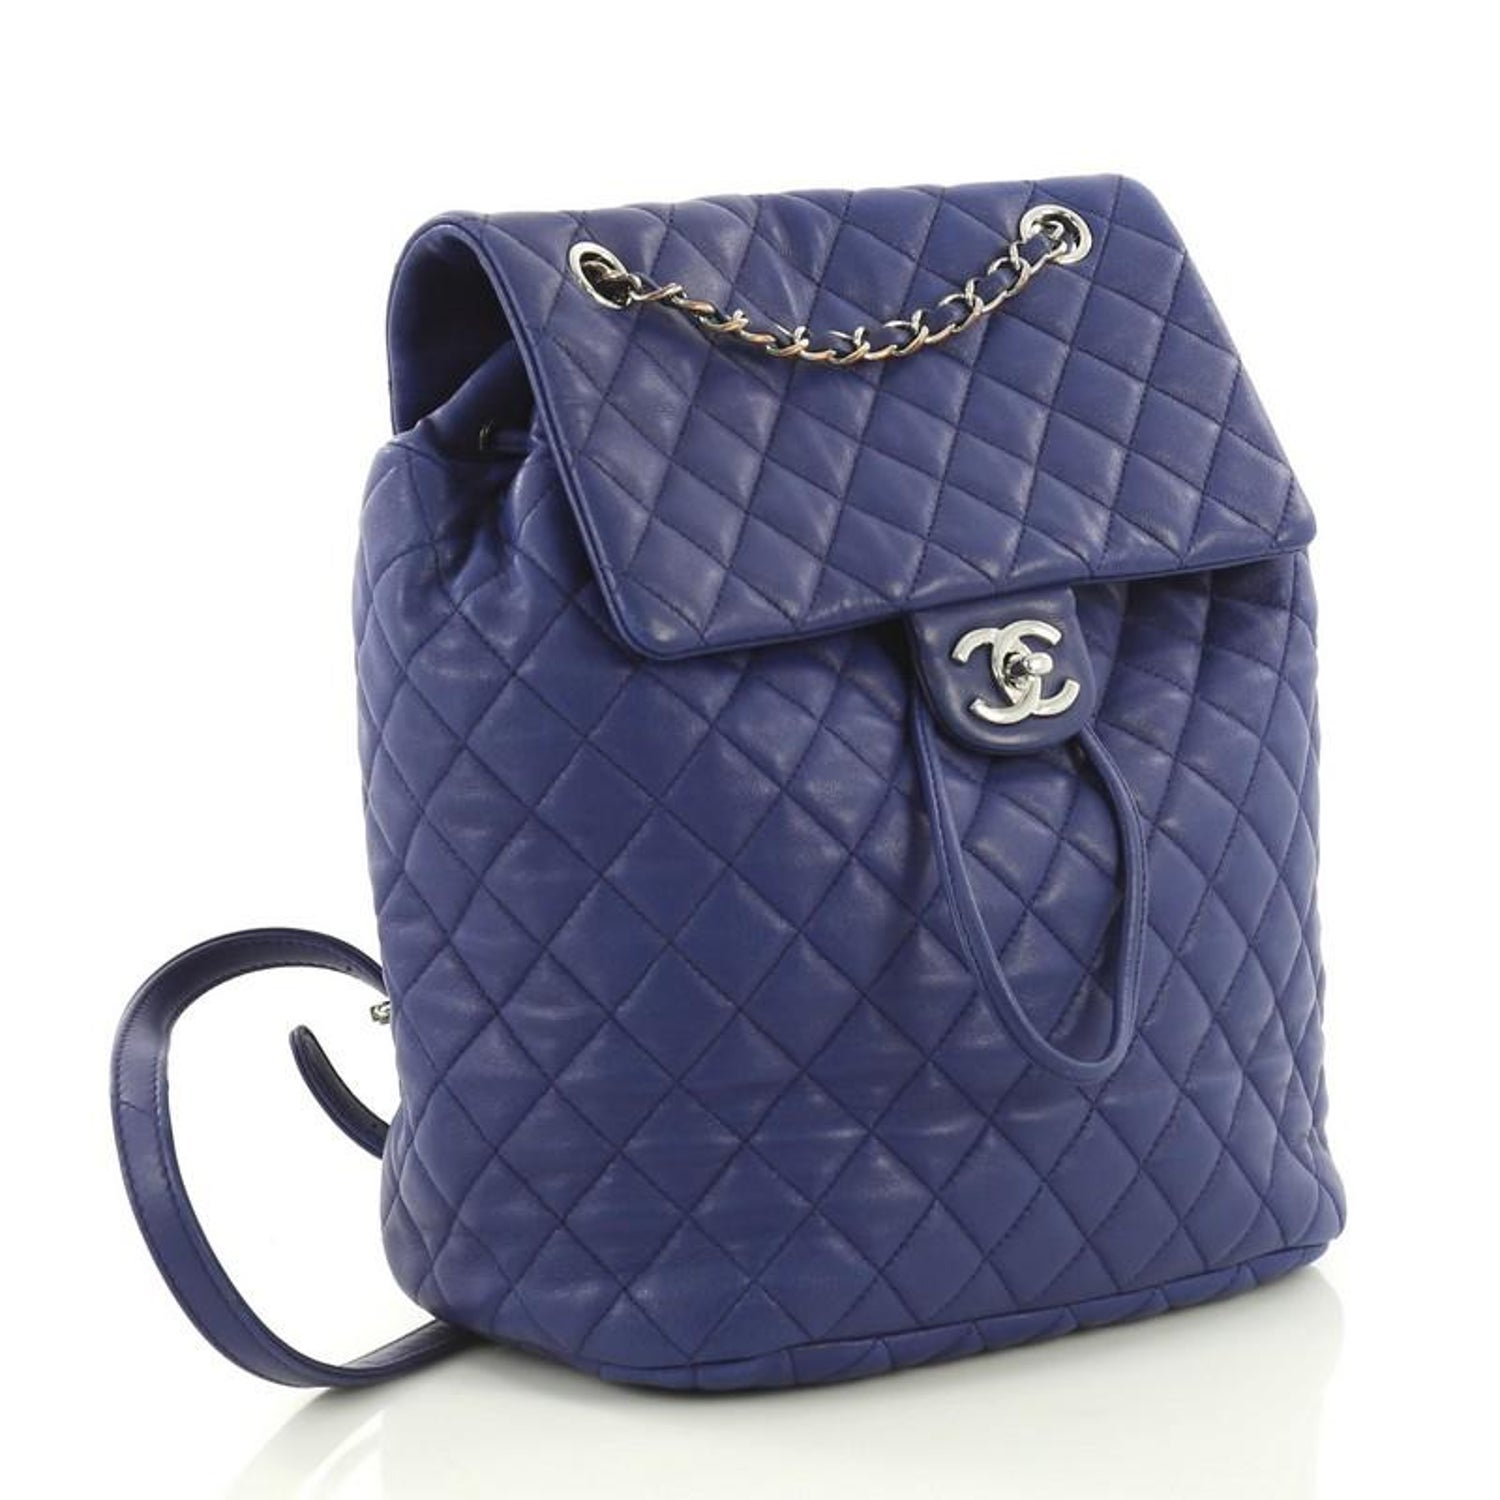 033e249ffc1e Chanel Urban Spirit Backpack Quilted Lambskin Large For Sale at 1stdibs